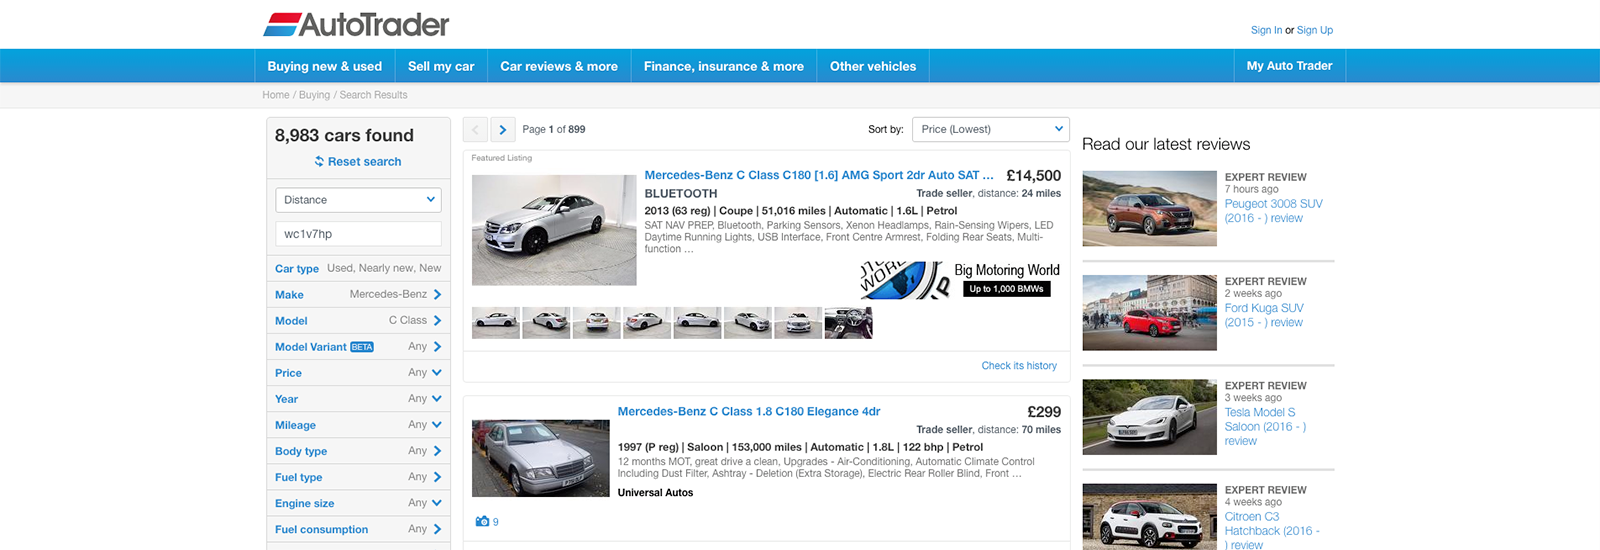 Buy Used Car From Private Seller Site